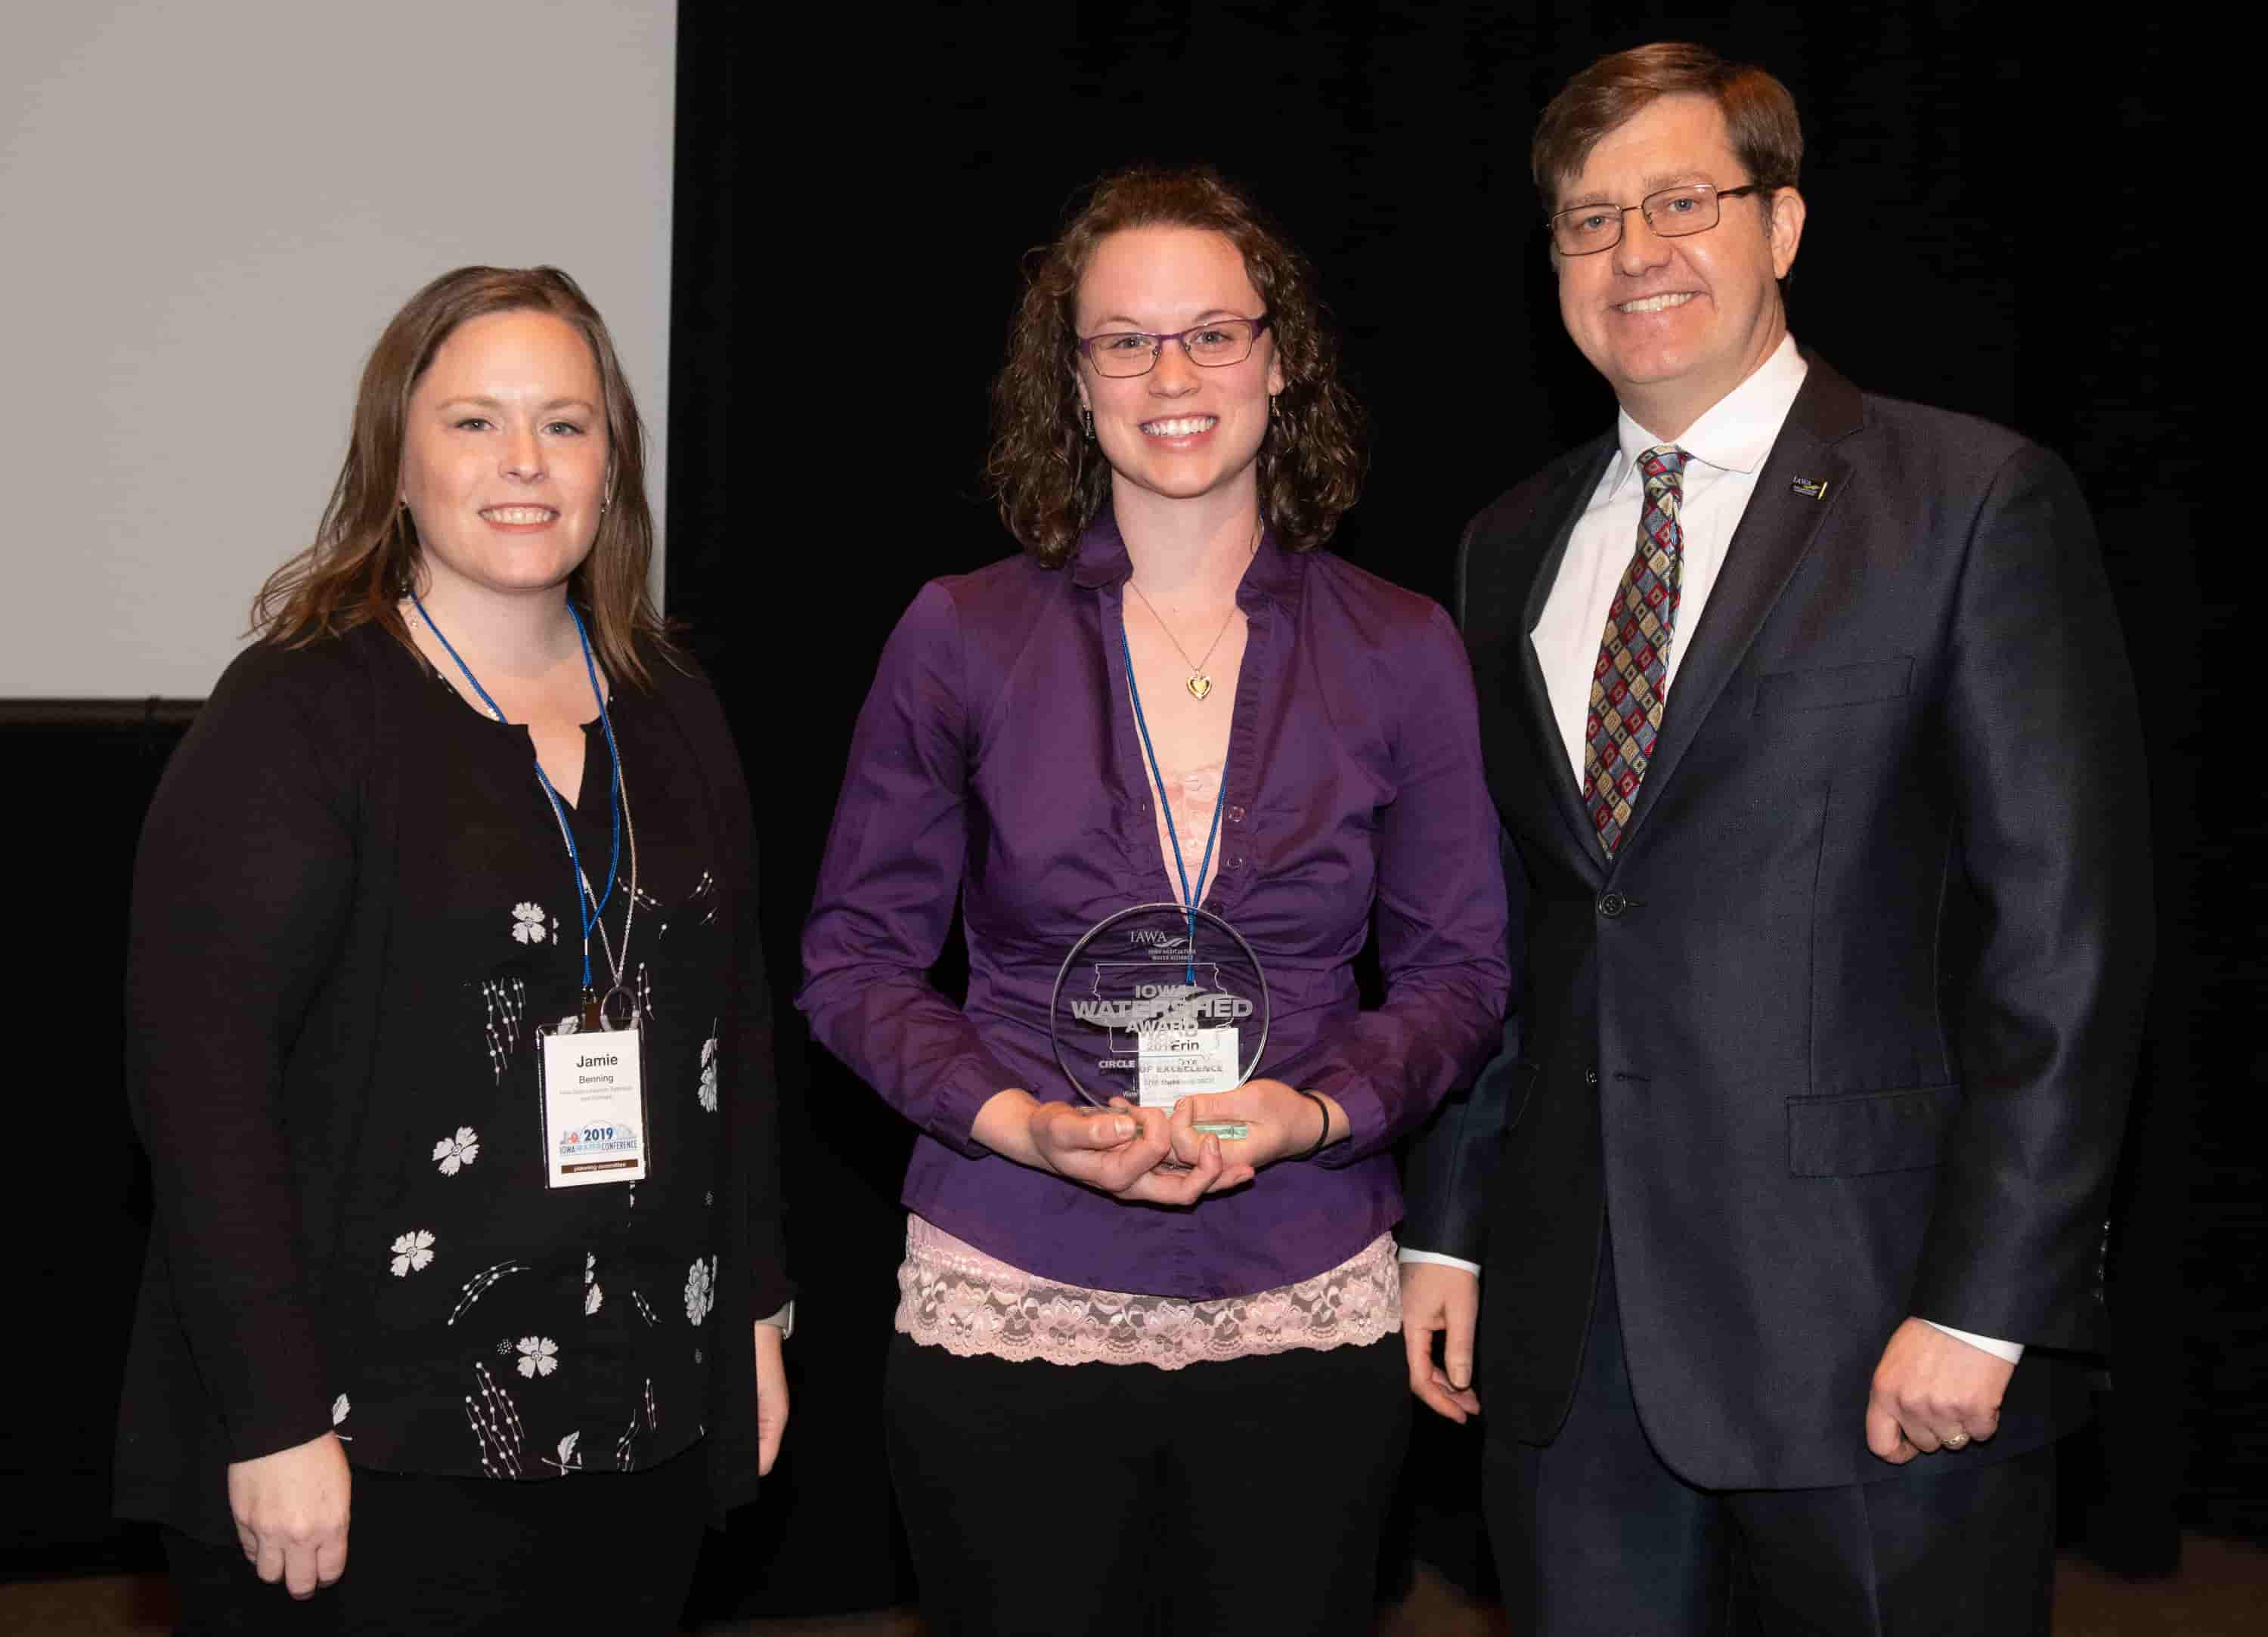 Jamie Benning with Iowa State University, Sean McMahon with Iowa Ag Water Alliance presenting Erin Ogle, watershed coordinator, with an IAWA Iowa Watershed Award